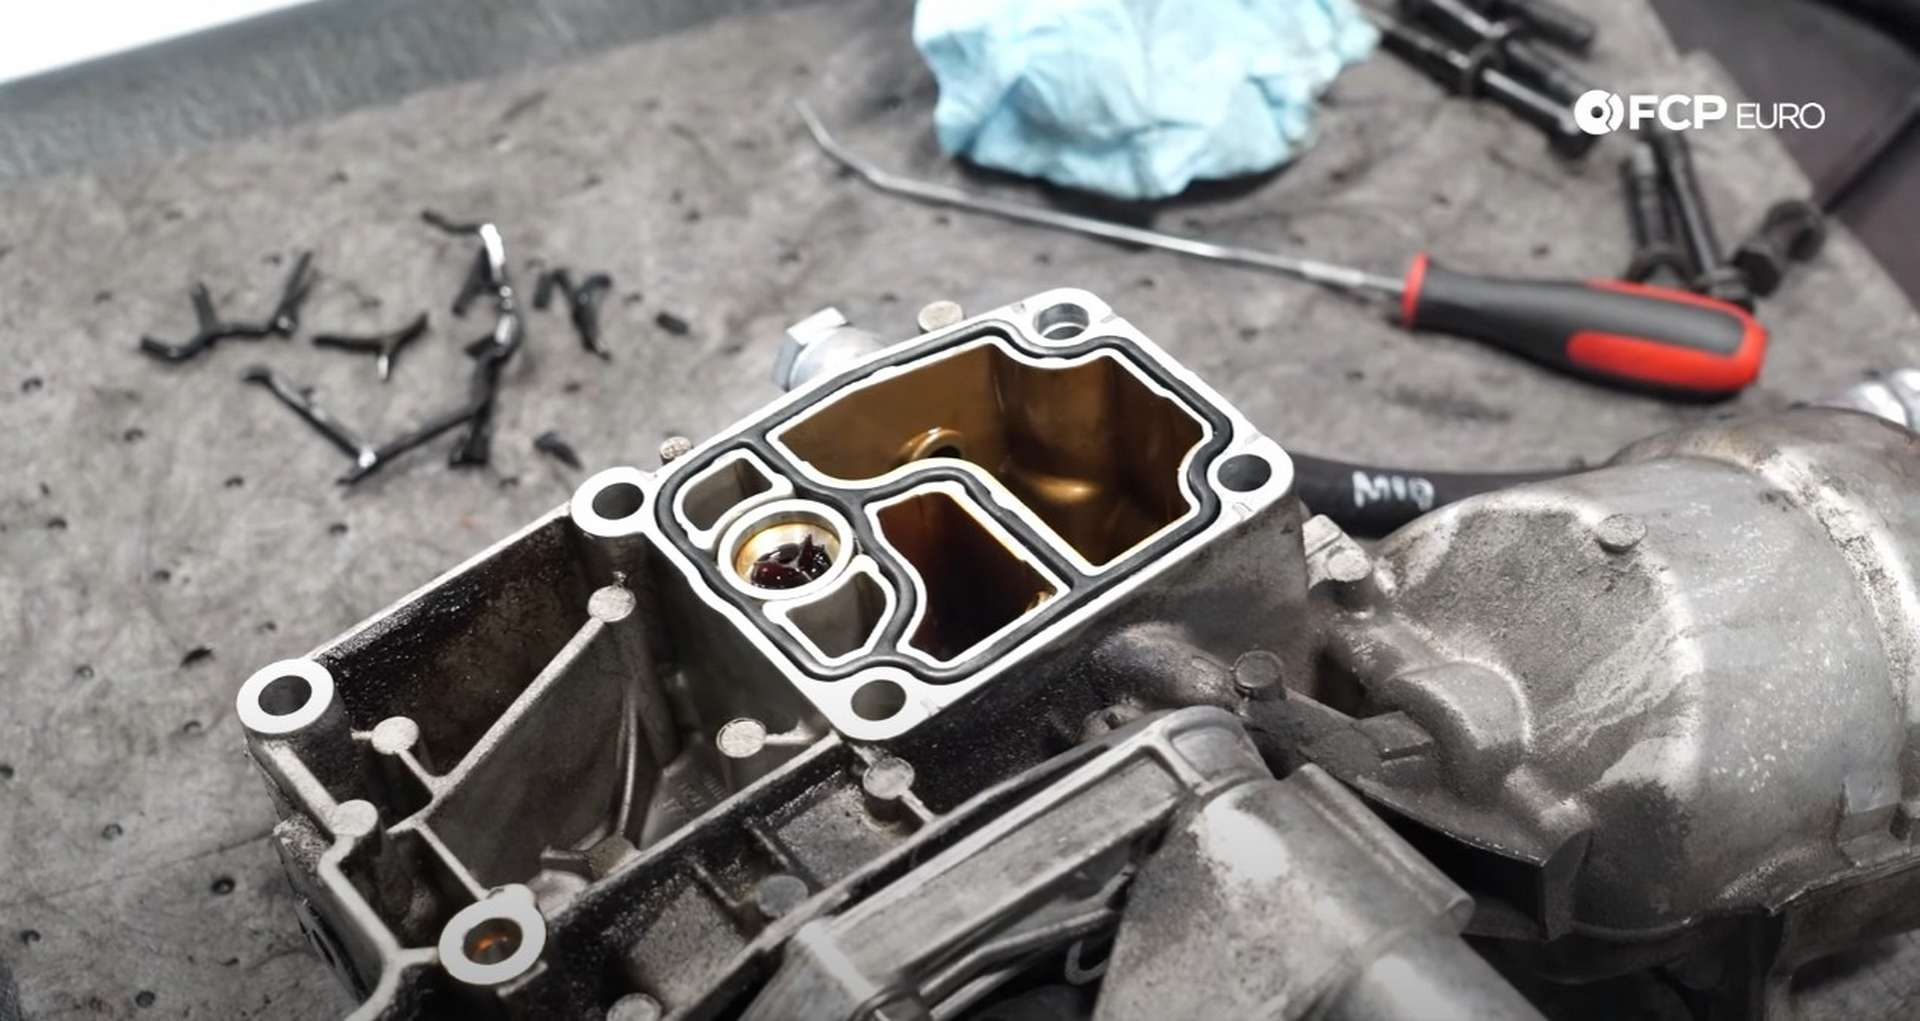 DIY BMW E46 Oil Filter Housing Gasket and VANOS Line Replacement the new gasket installed in the housing